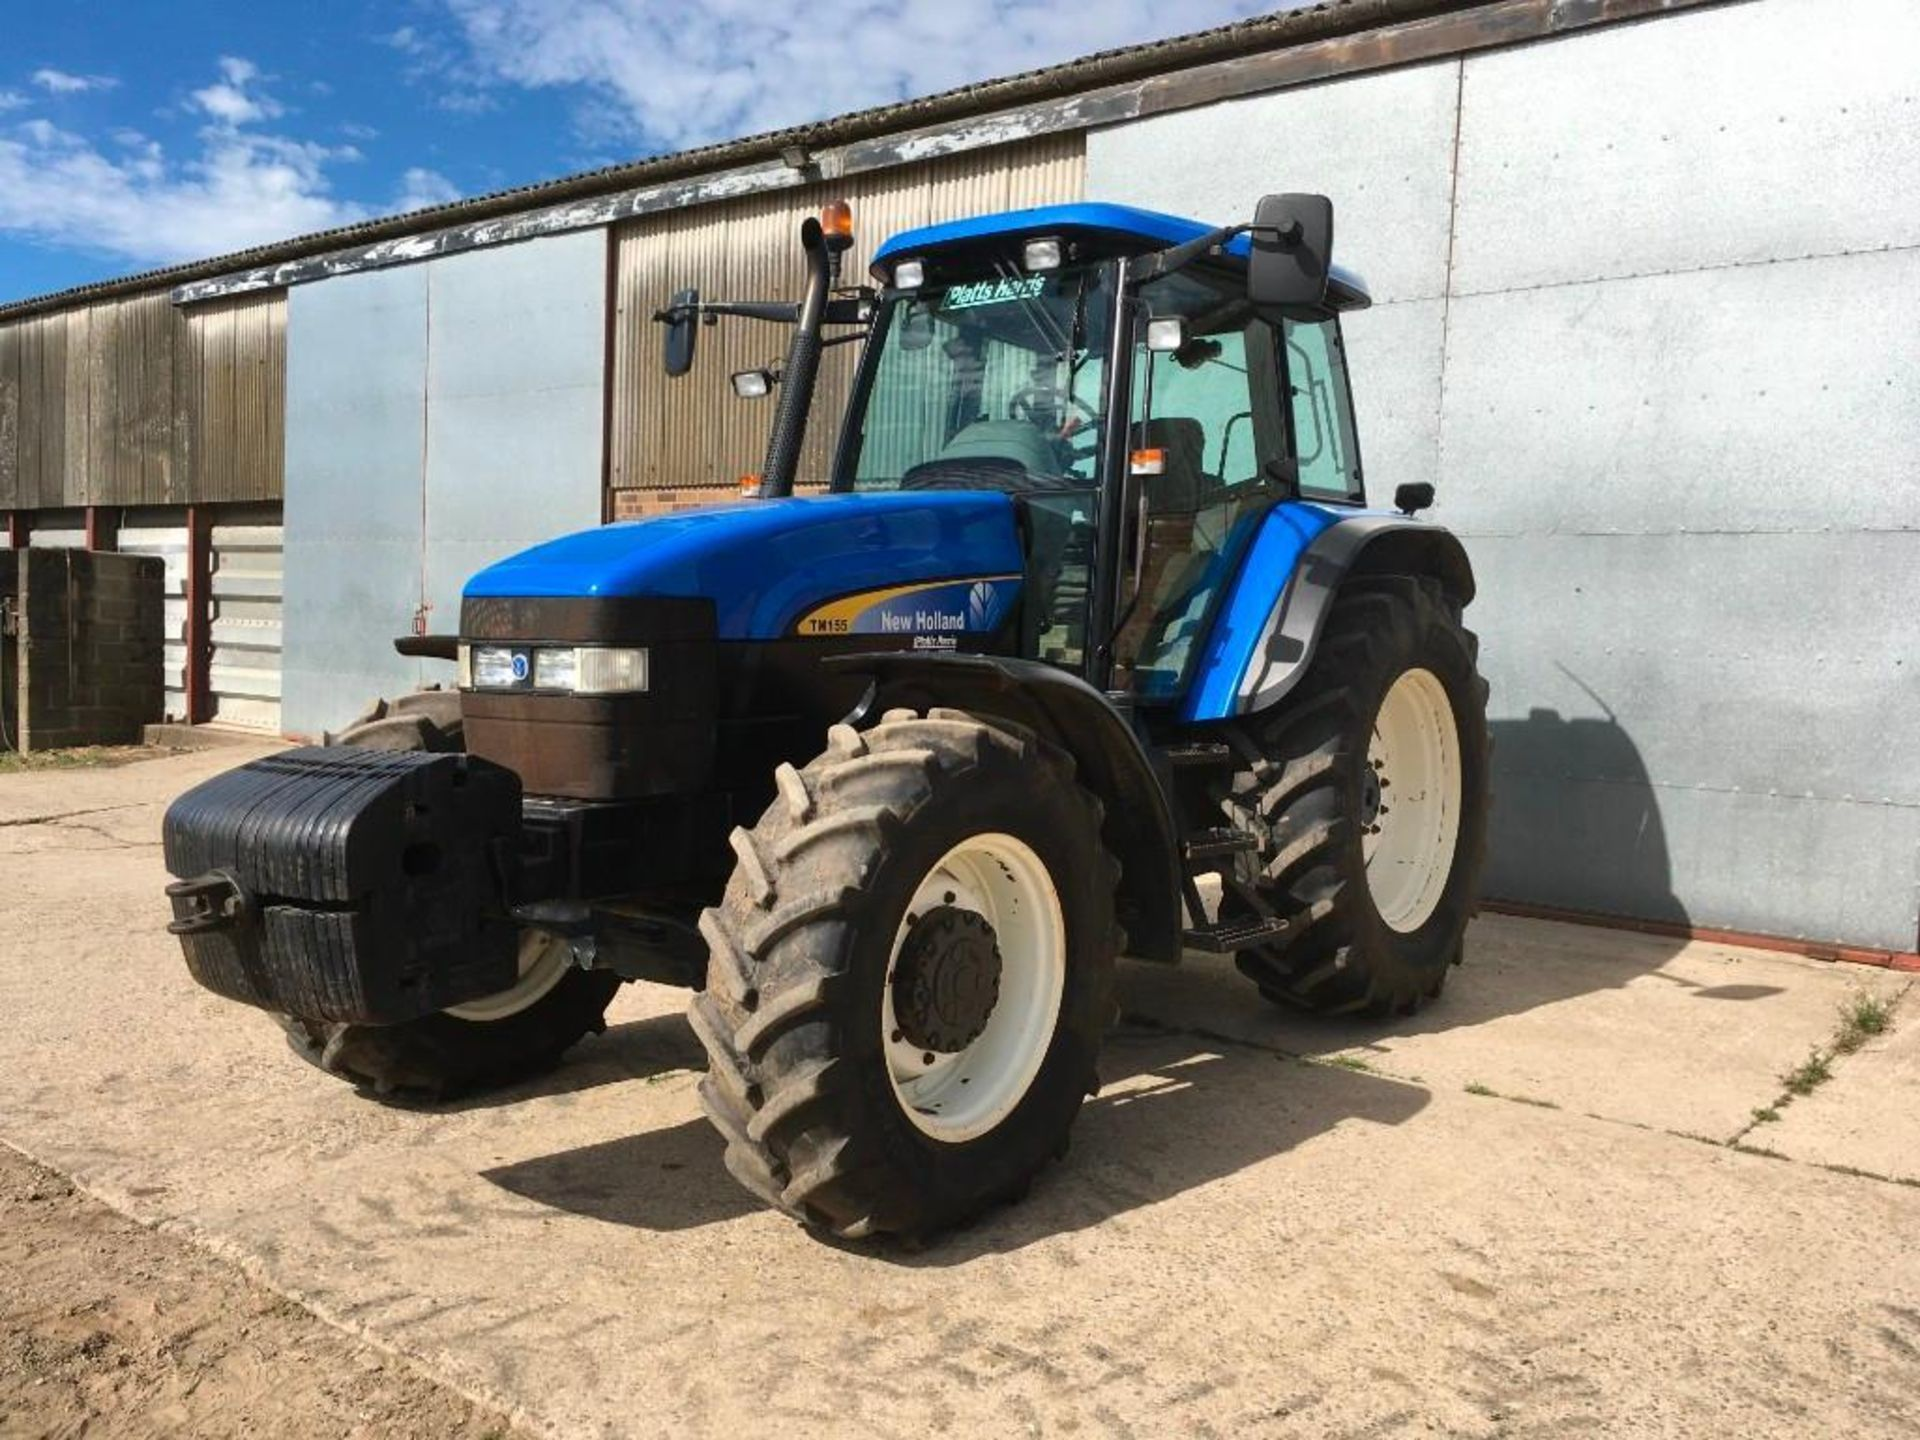 2007 New Holland TM155 tractor with range command gear box, 4 spool valves, push out pick up hitch, - Image 10 of 12